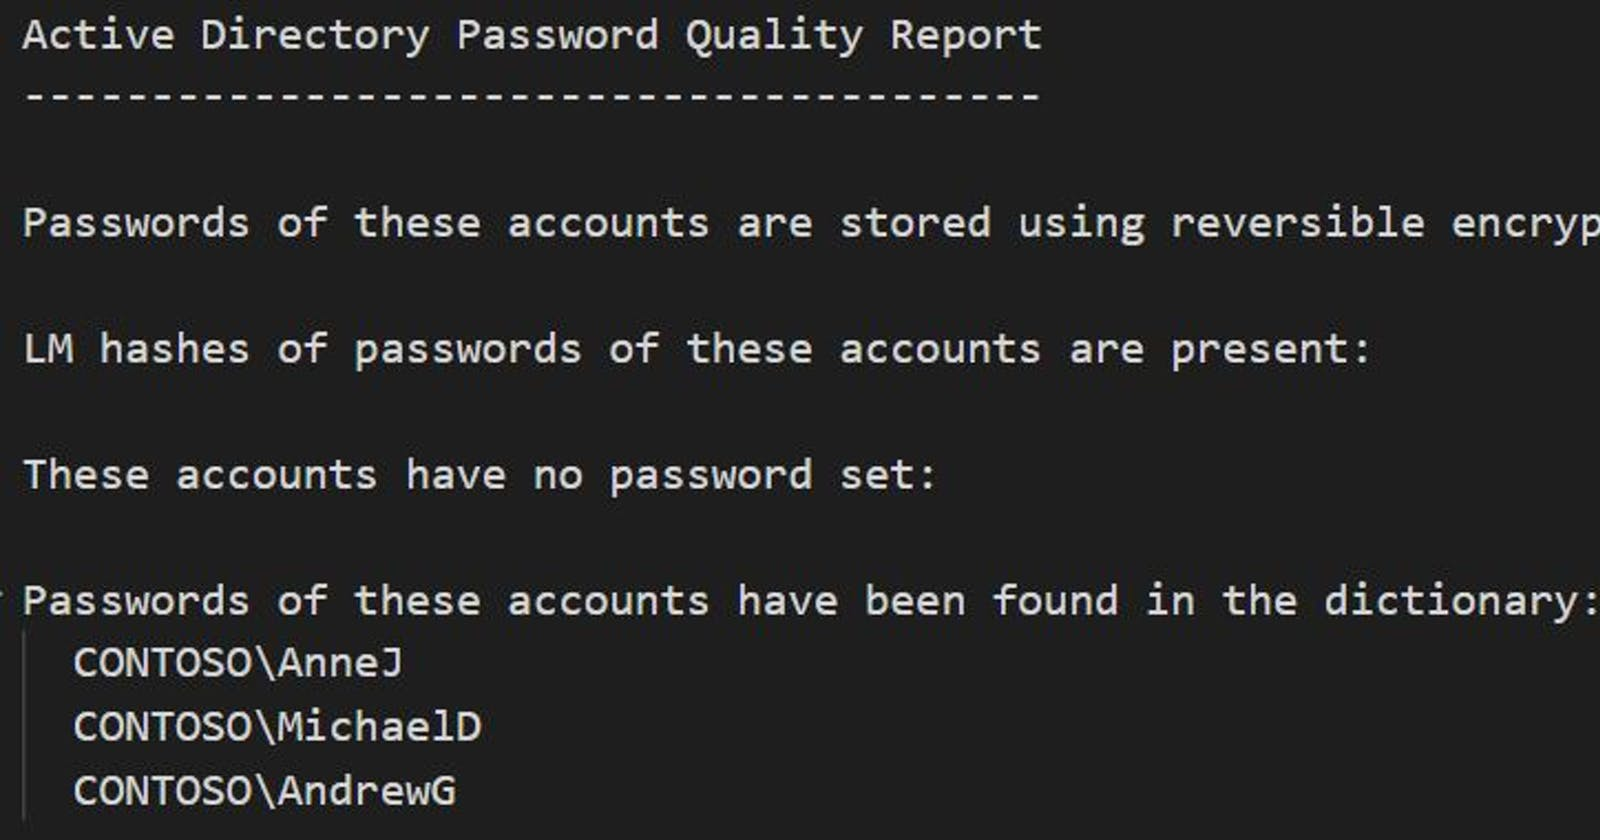 Audit your Active Directory user passwords against haveibeenpwned.com safely using PowerShell